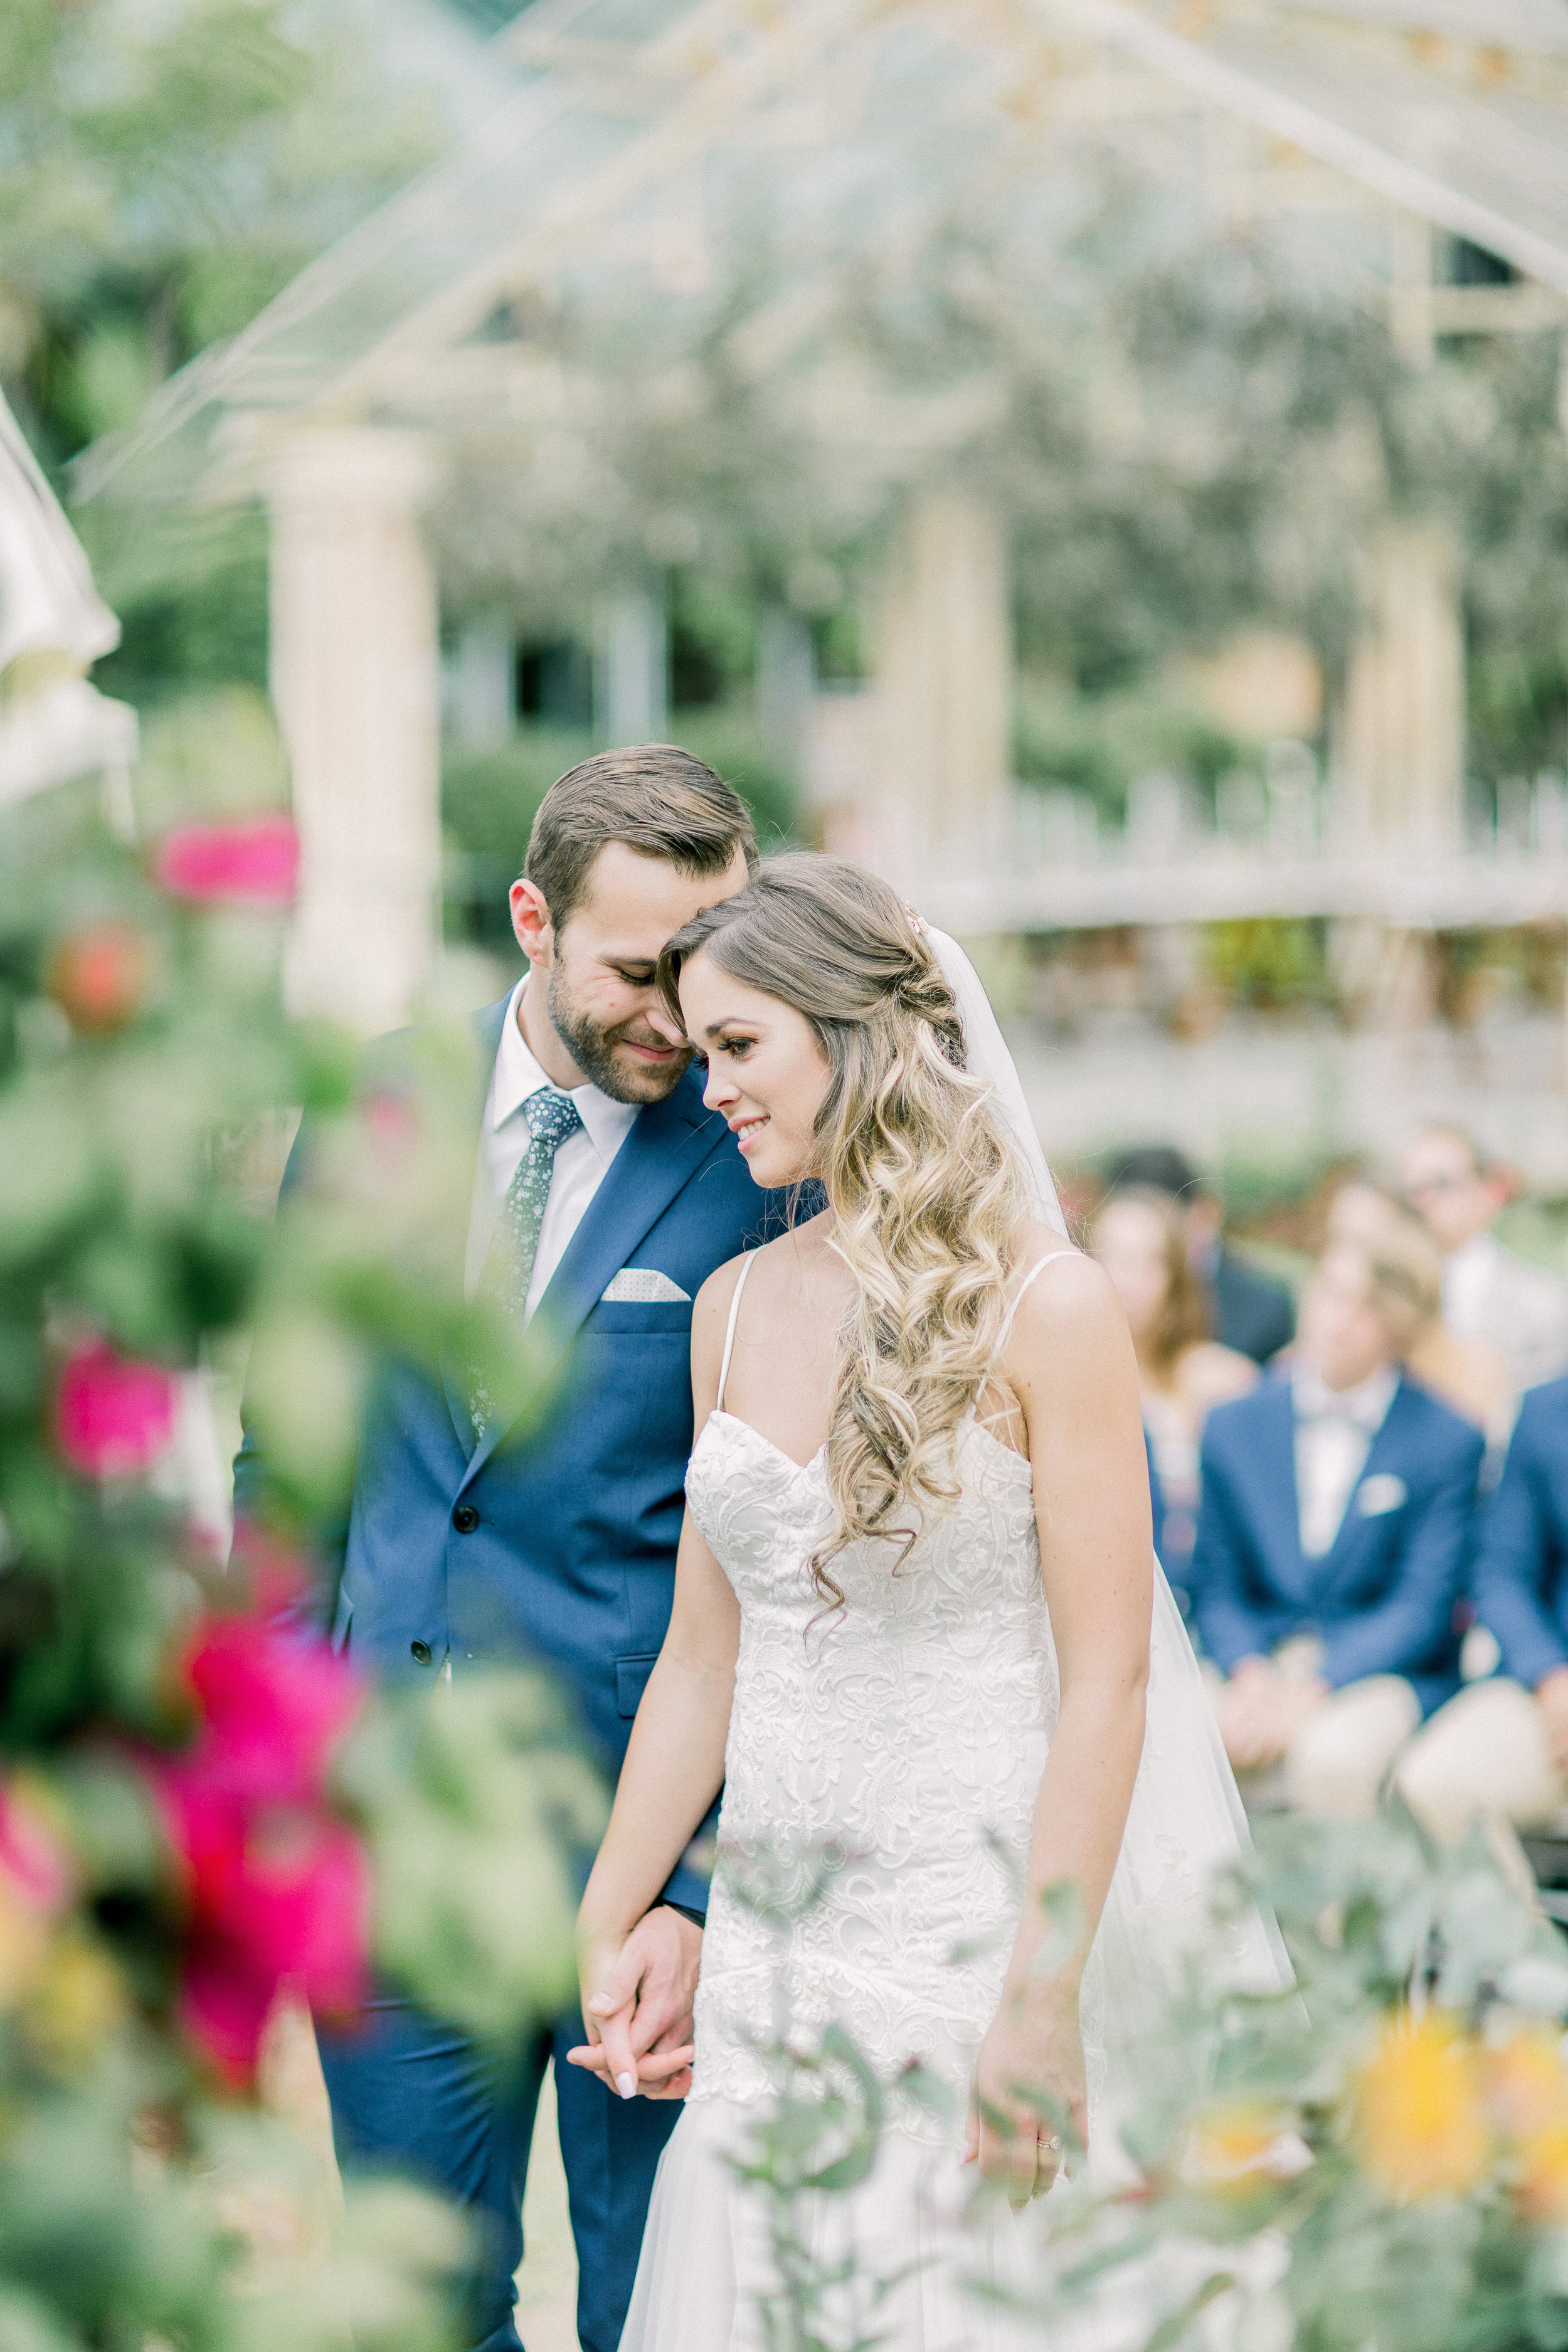 South africa wedding photographer clareece smit photography44.jpg